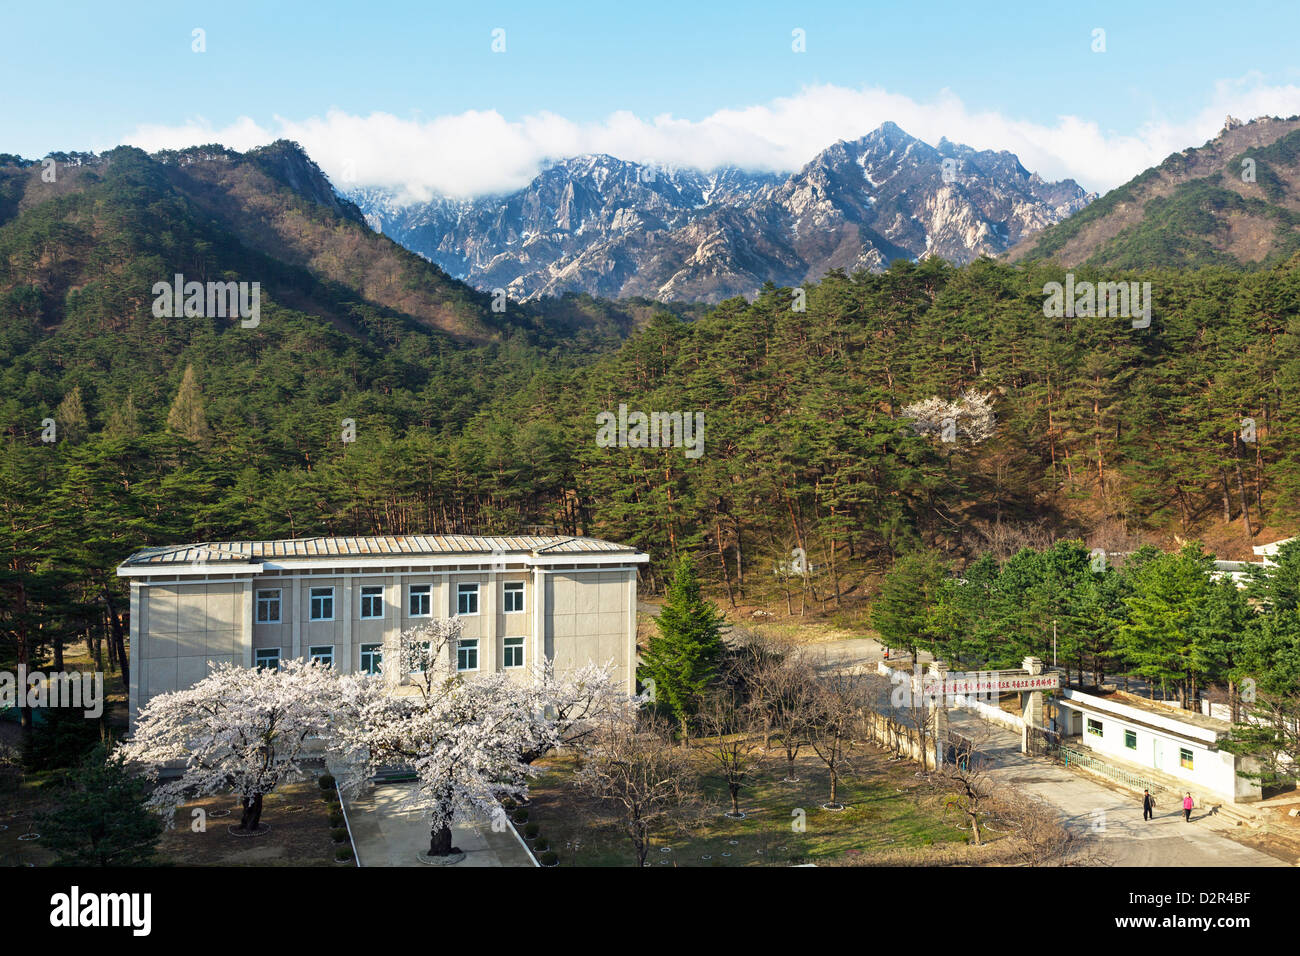 South Korean developed resort complex, Kumgang Mountains, Democratic People's Republic of Korea (DPRK), North - Stock Image